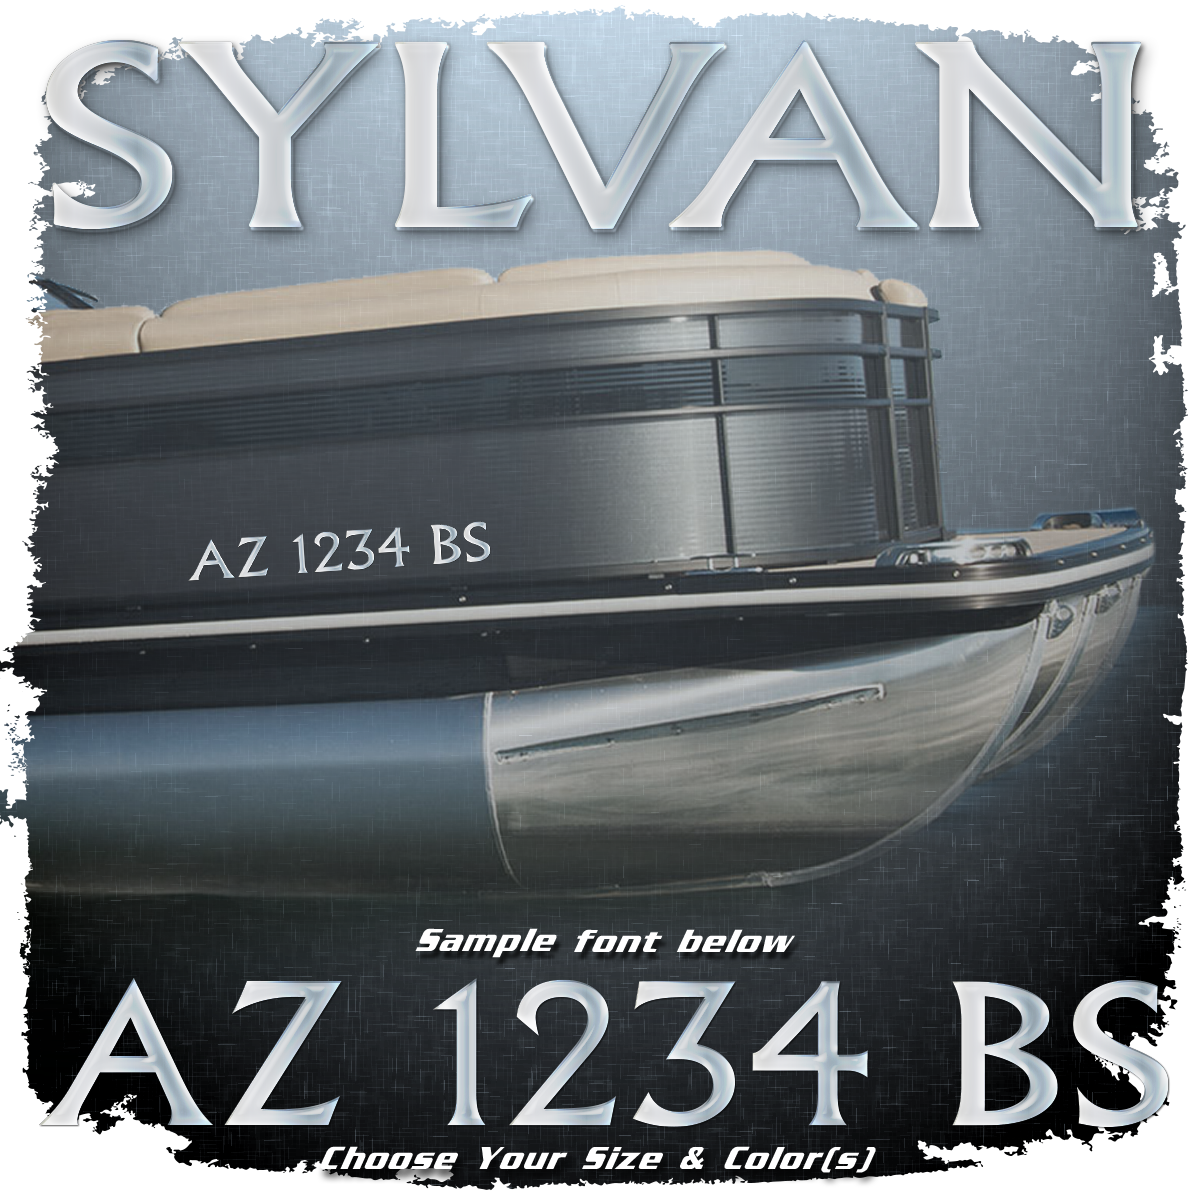 Sylvan Registration (2 included), Choose Your Own Colors